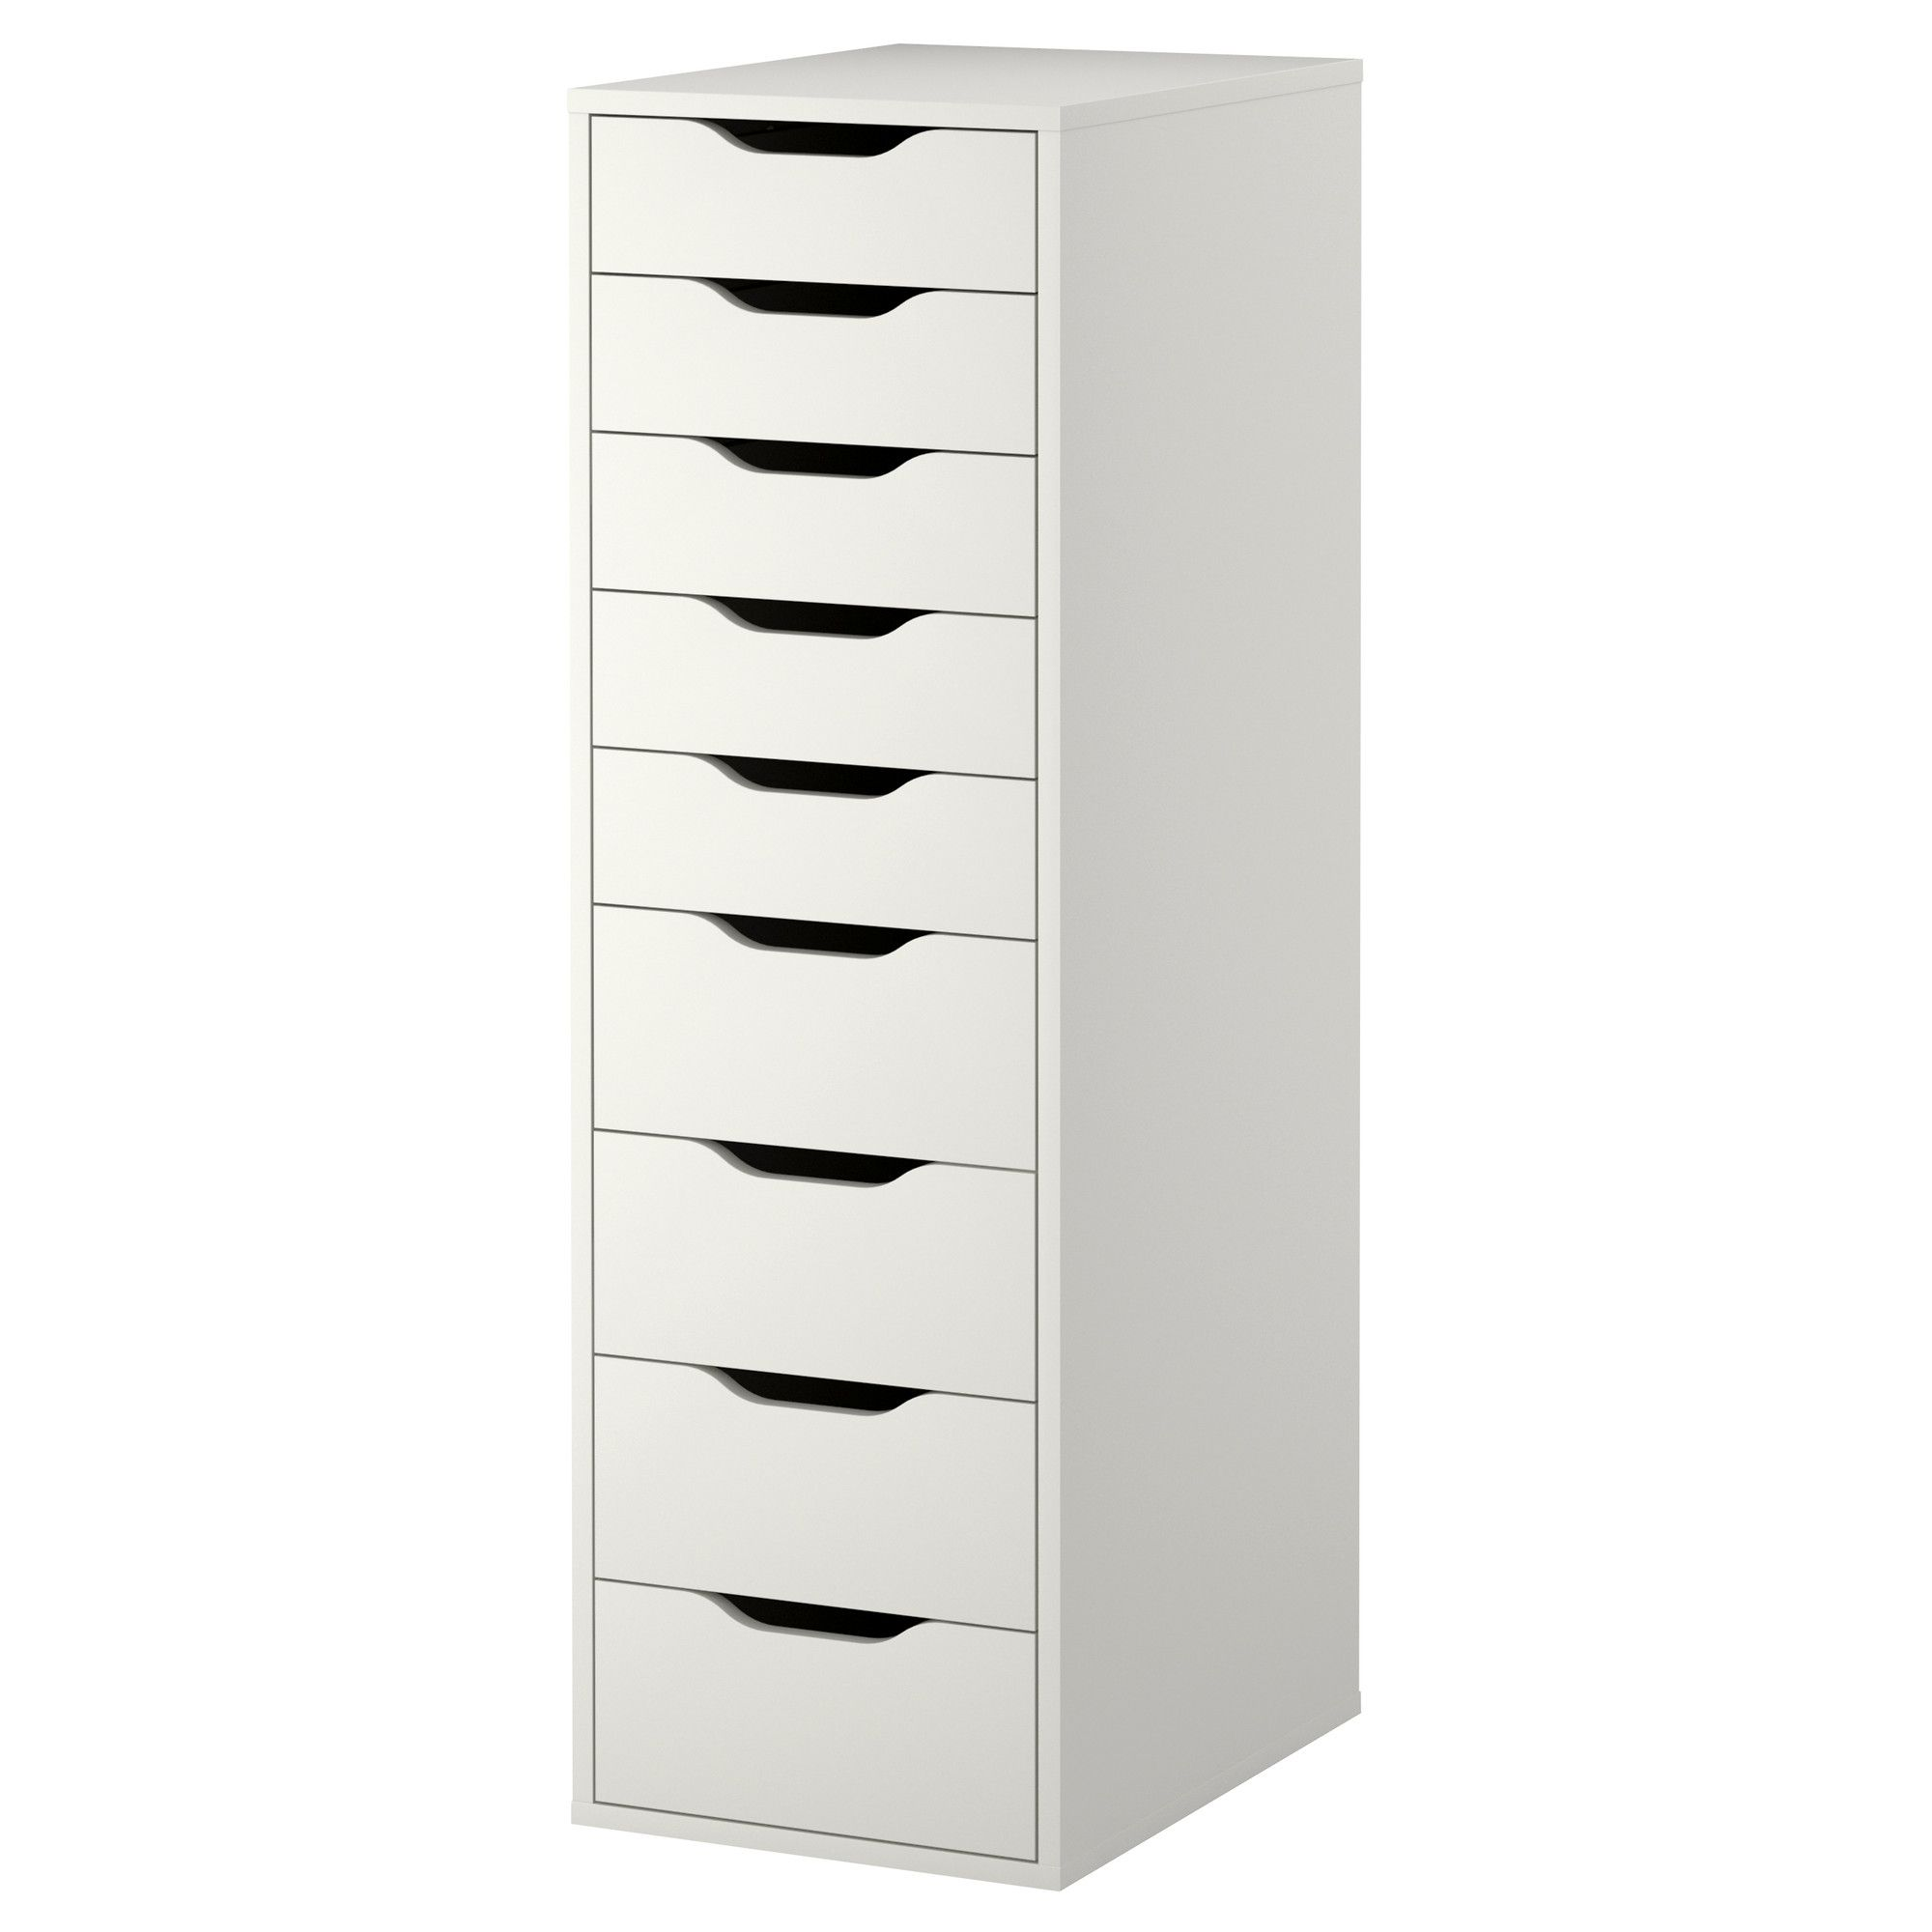 alex drawer unit with 9 drawers white tiroirs ikea caisson et tiroir. Black Bedroom Furniture Sets. Home Design Ideas